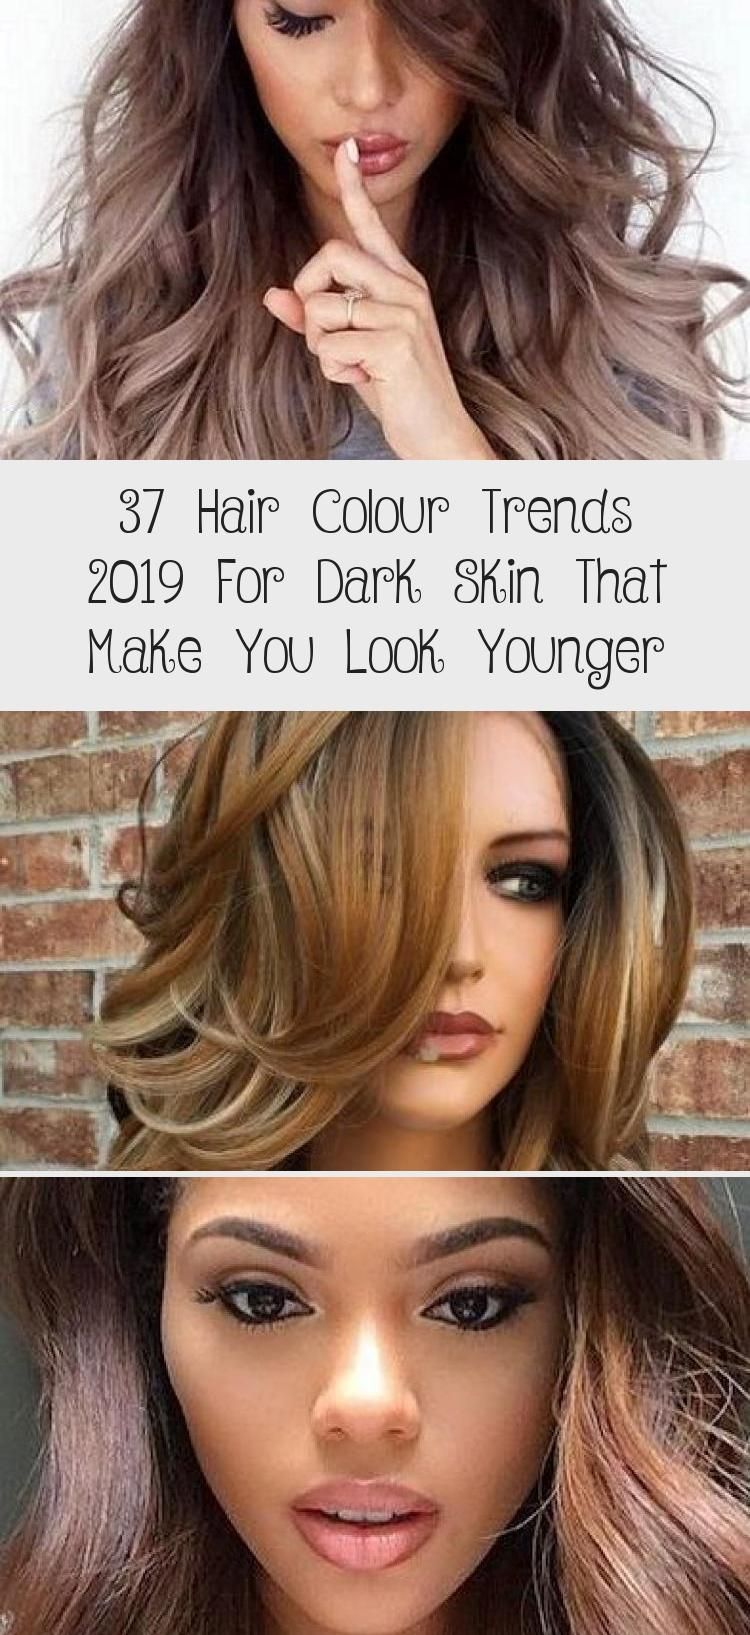 37 Hair Colour Trends 2019 For Dark Skin That Make You Look Younger Best Pin Hair Color Hair Color Trends Younger Hair